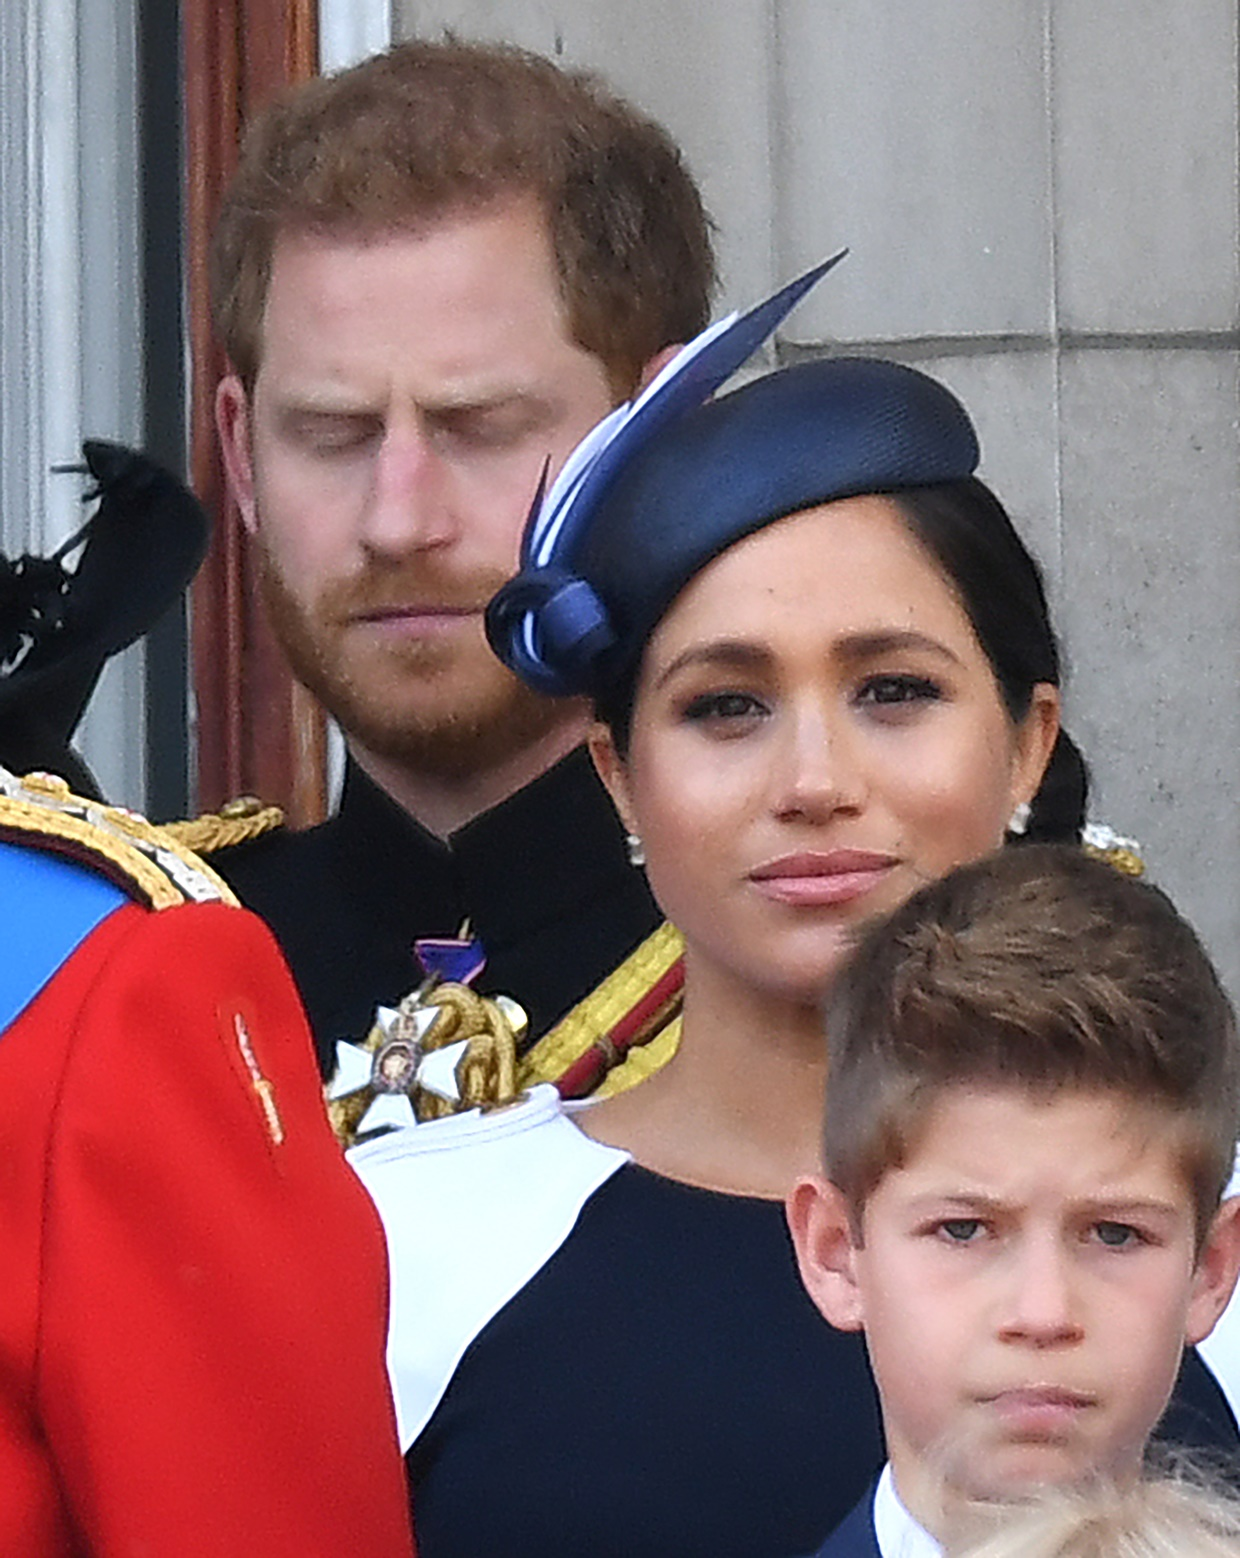 Prince Harry appears to tell Meghan to